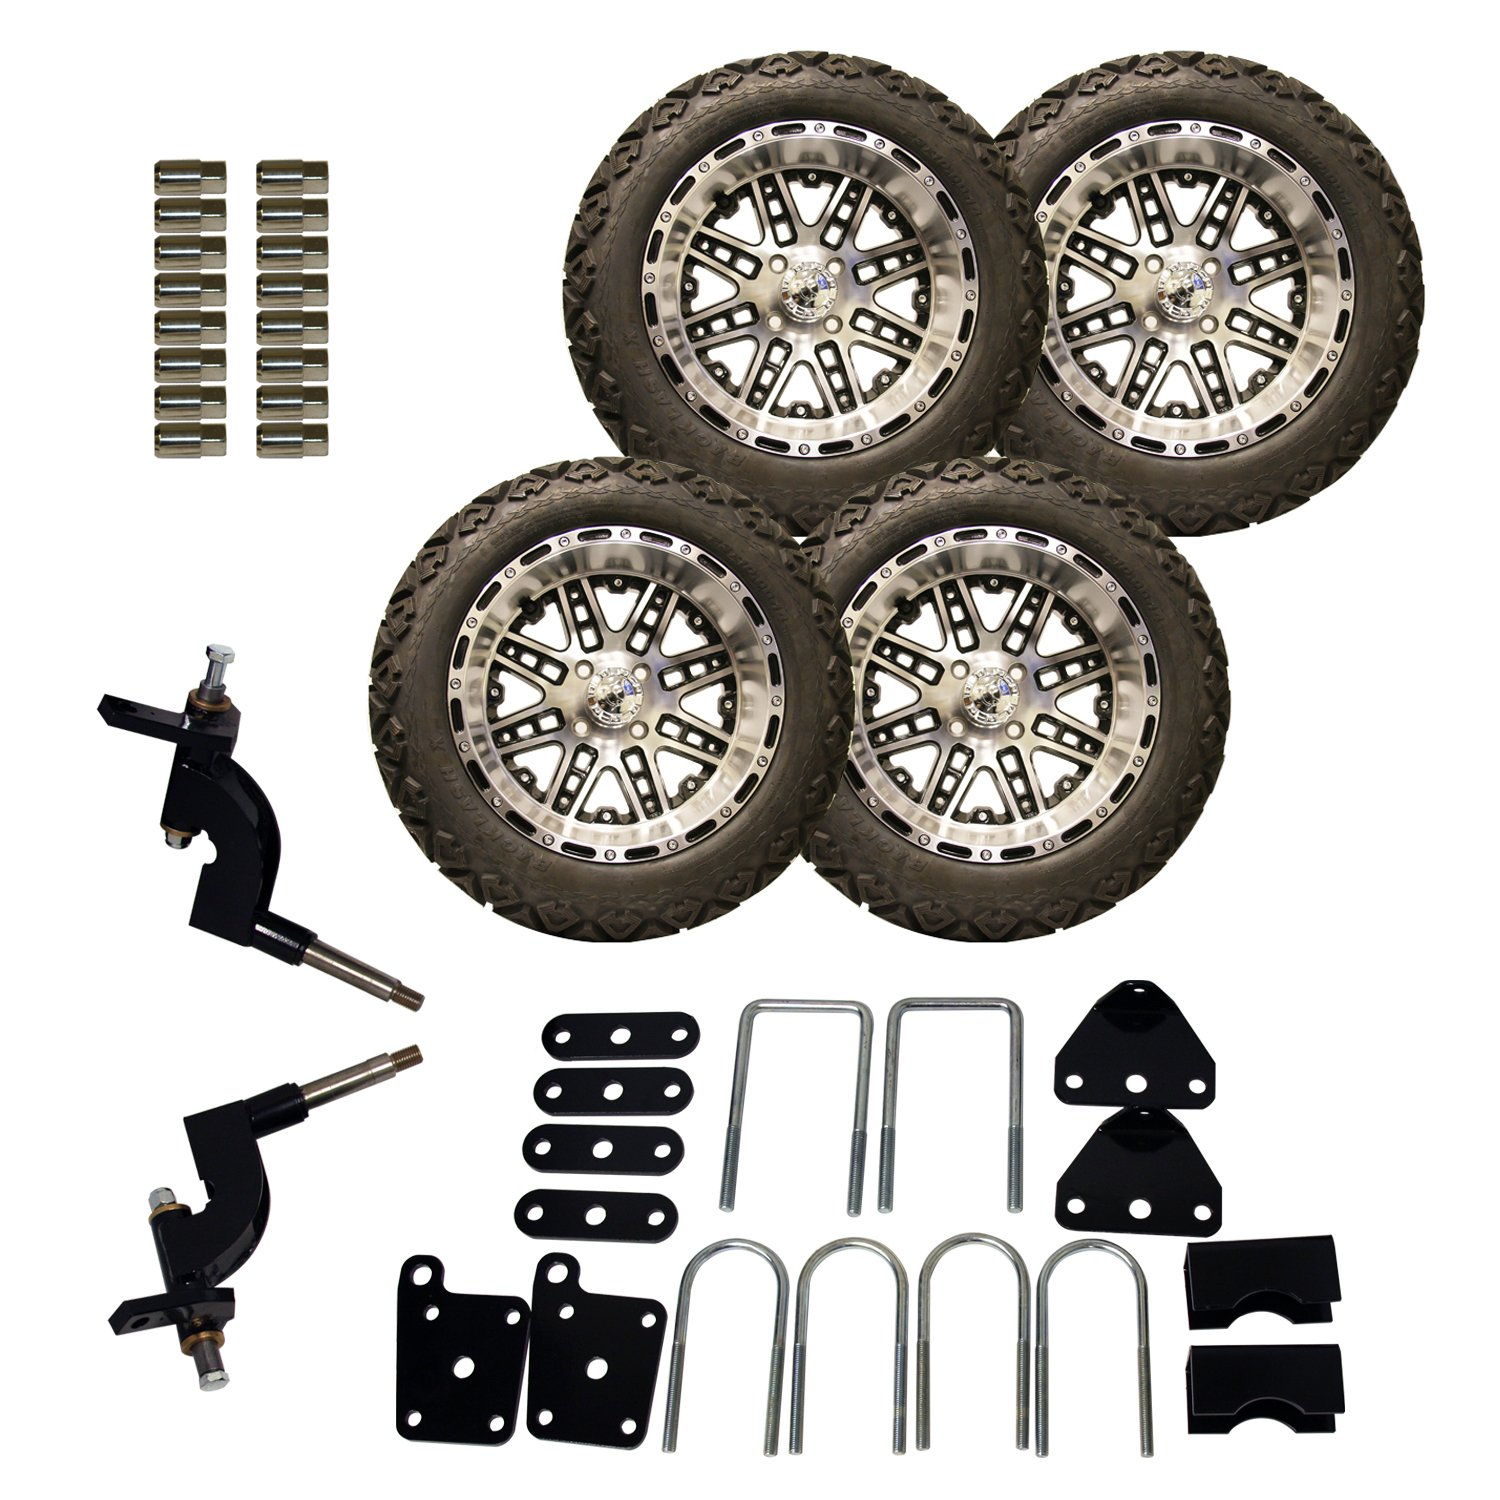 Pro-Fit 750513PKG 23 by 10 to 14-Inch Backlash X Tire with Machined with Black Megastar Wheel Package and Lift Kit Combo for RXV, 5-Inch